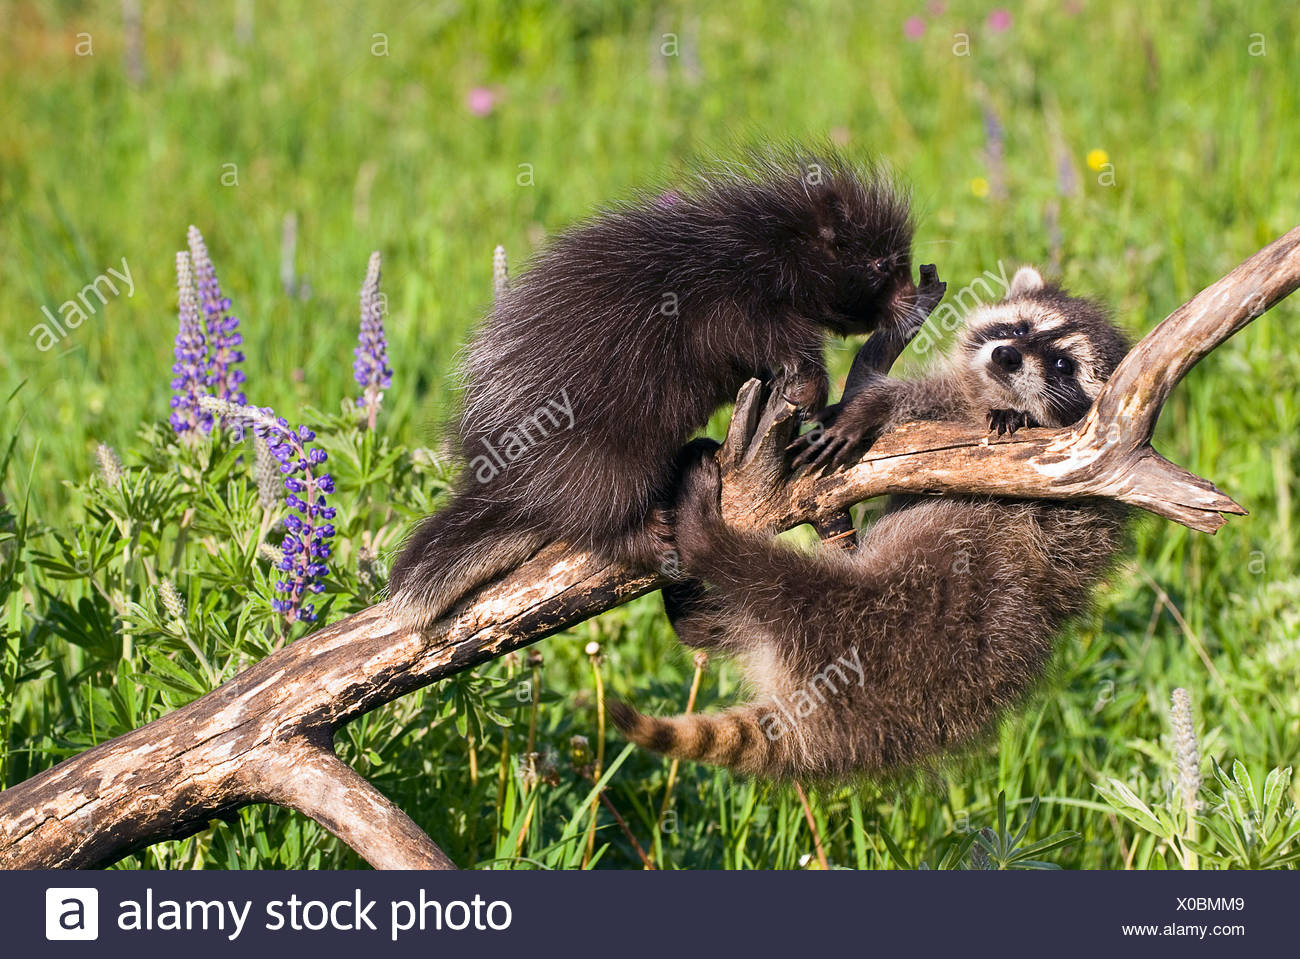 Baby raccoon and porcupine on branch Stock Photo